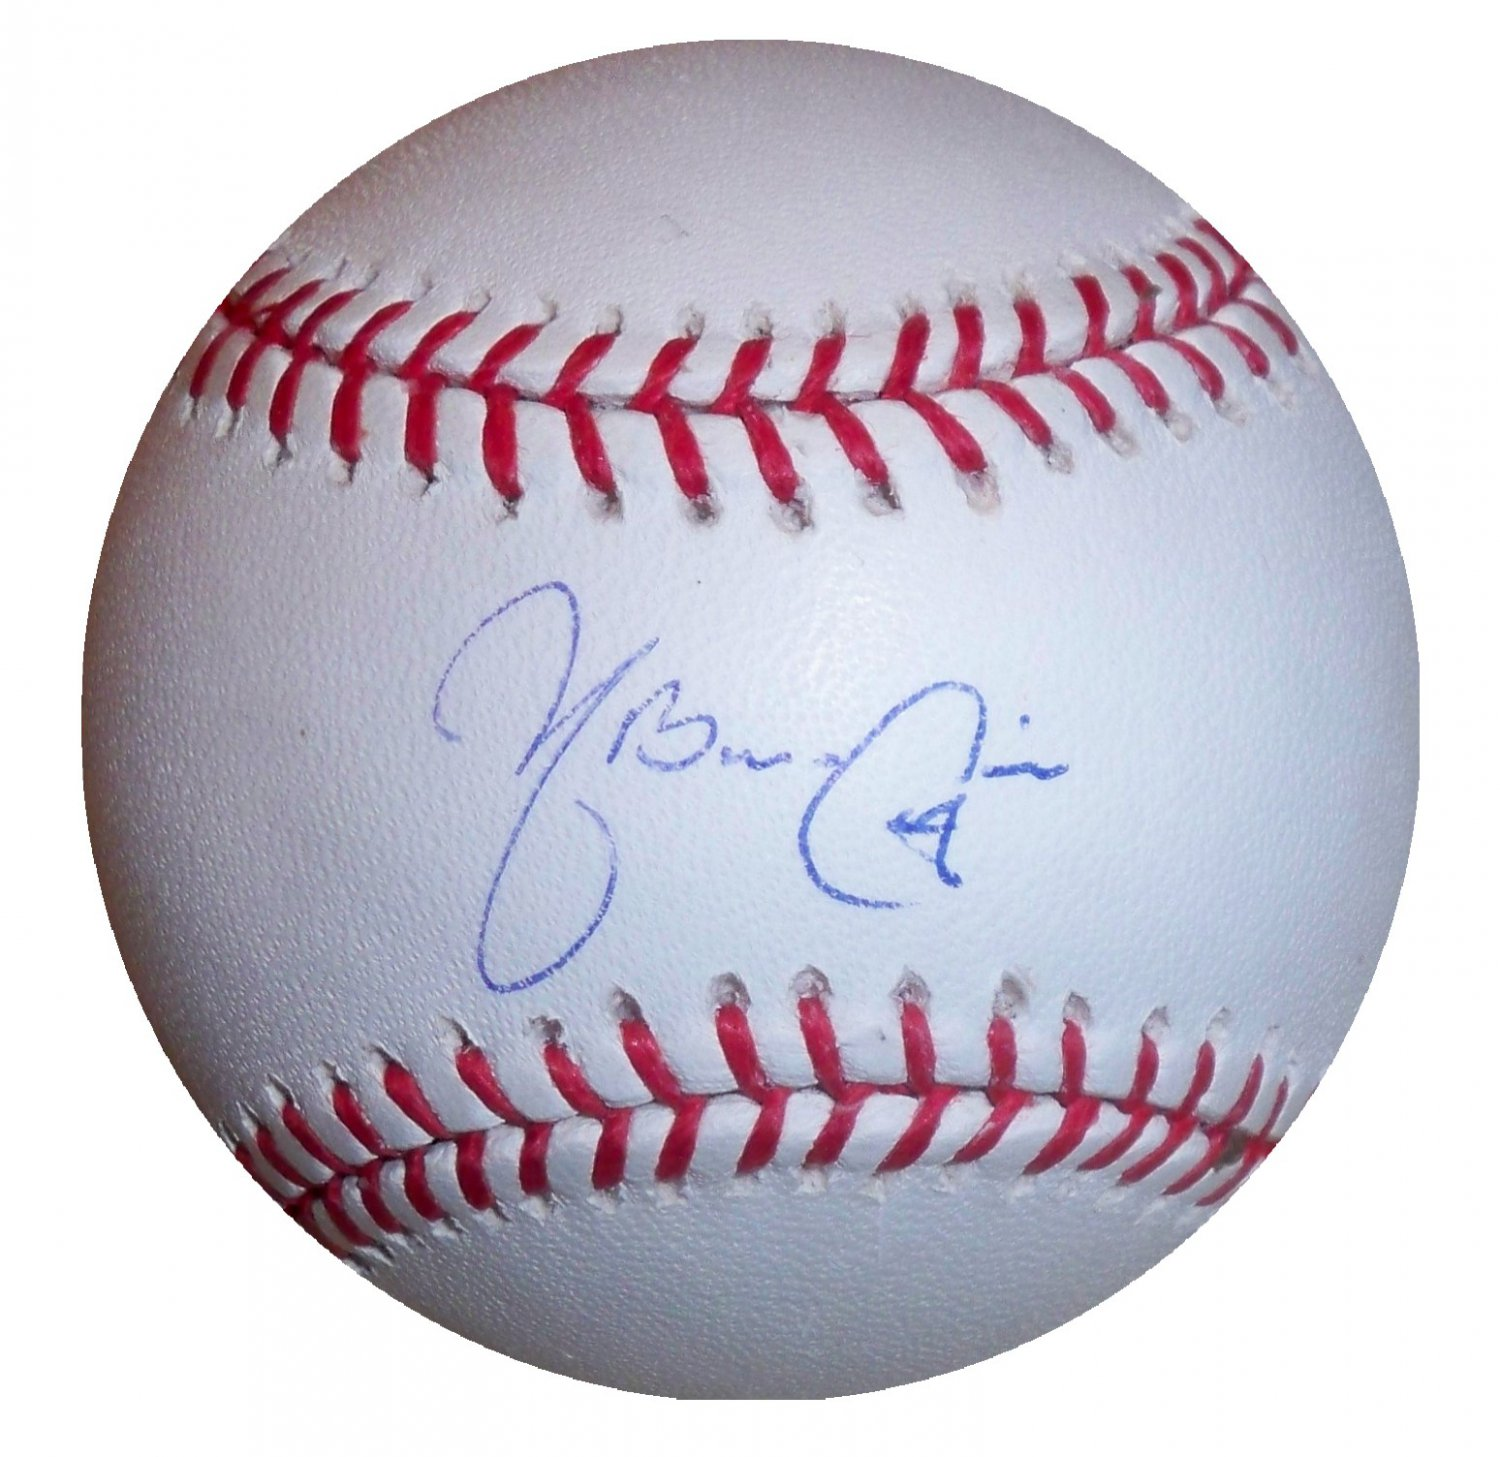 Yadier Molina Signed Official Major League Baseball (Steiner)